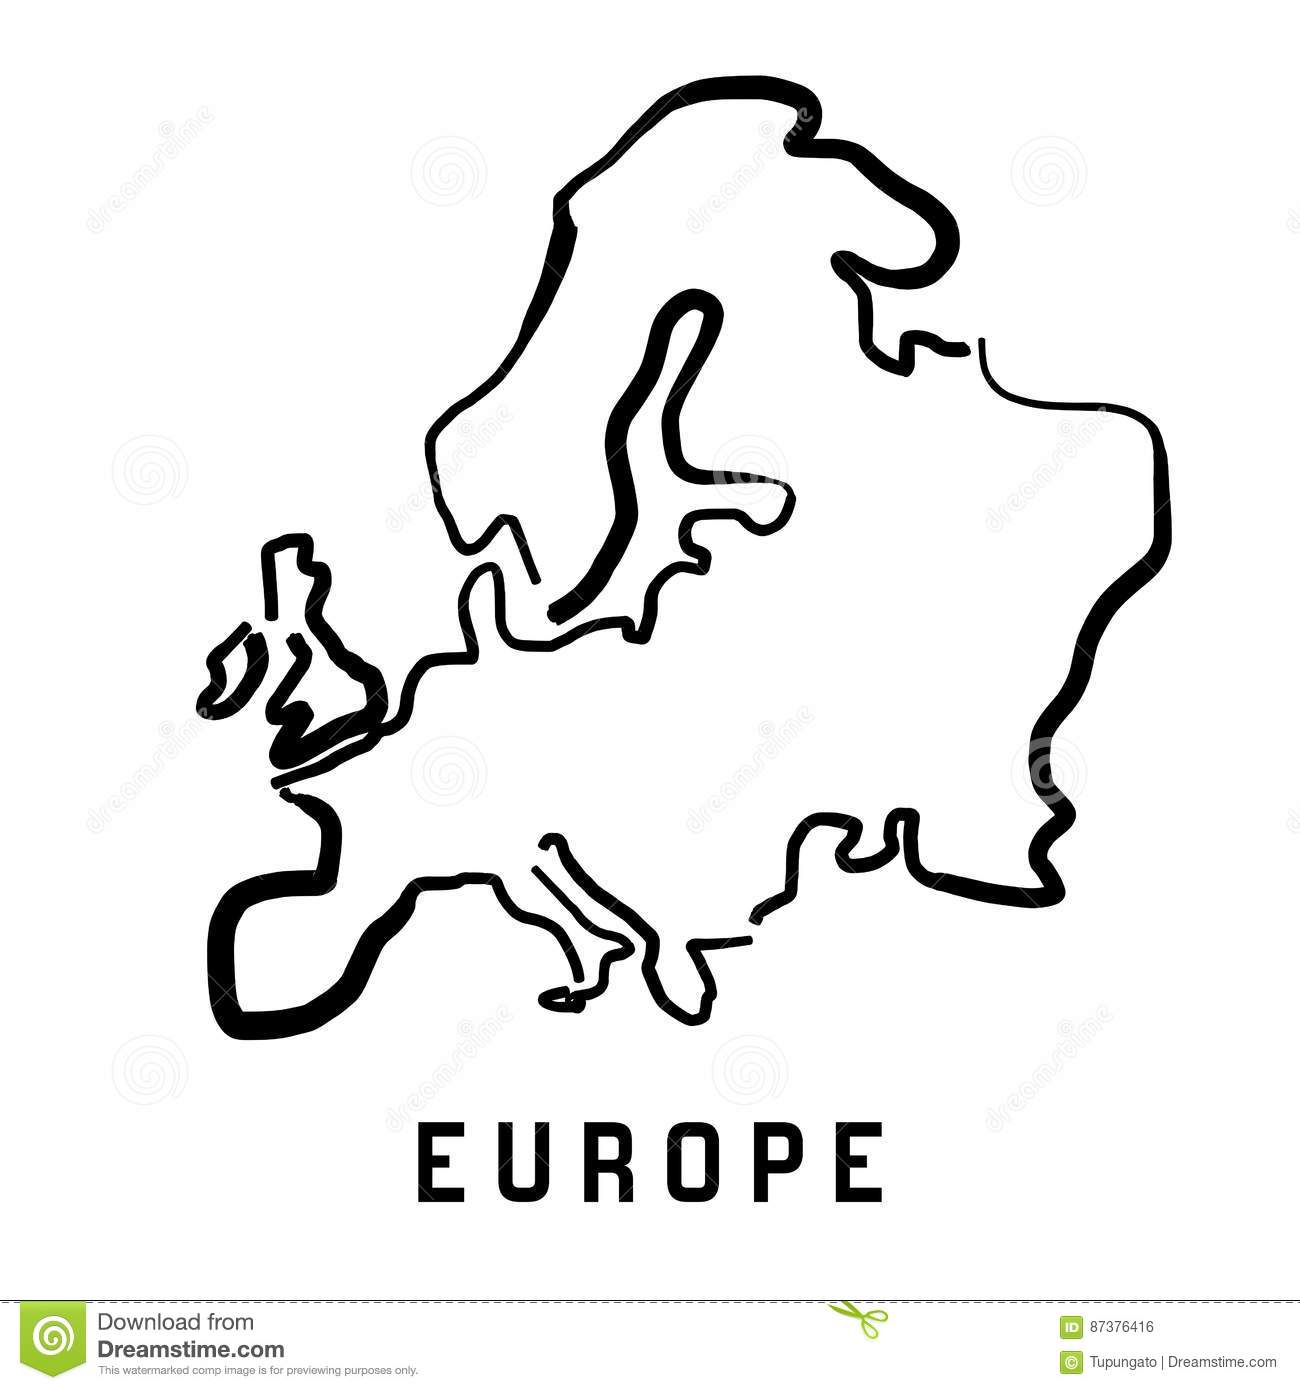 Europe Simple Outline Stock Vector Illustration Of Handwritten